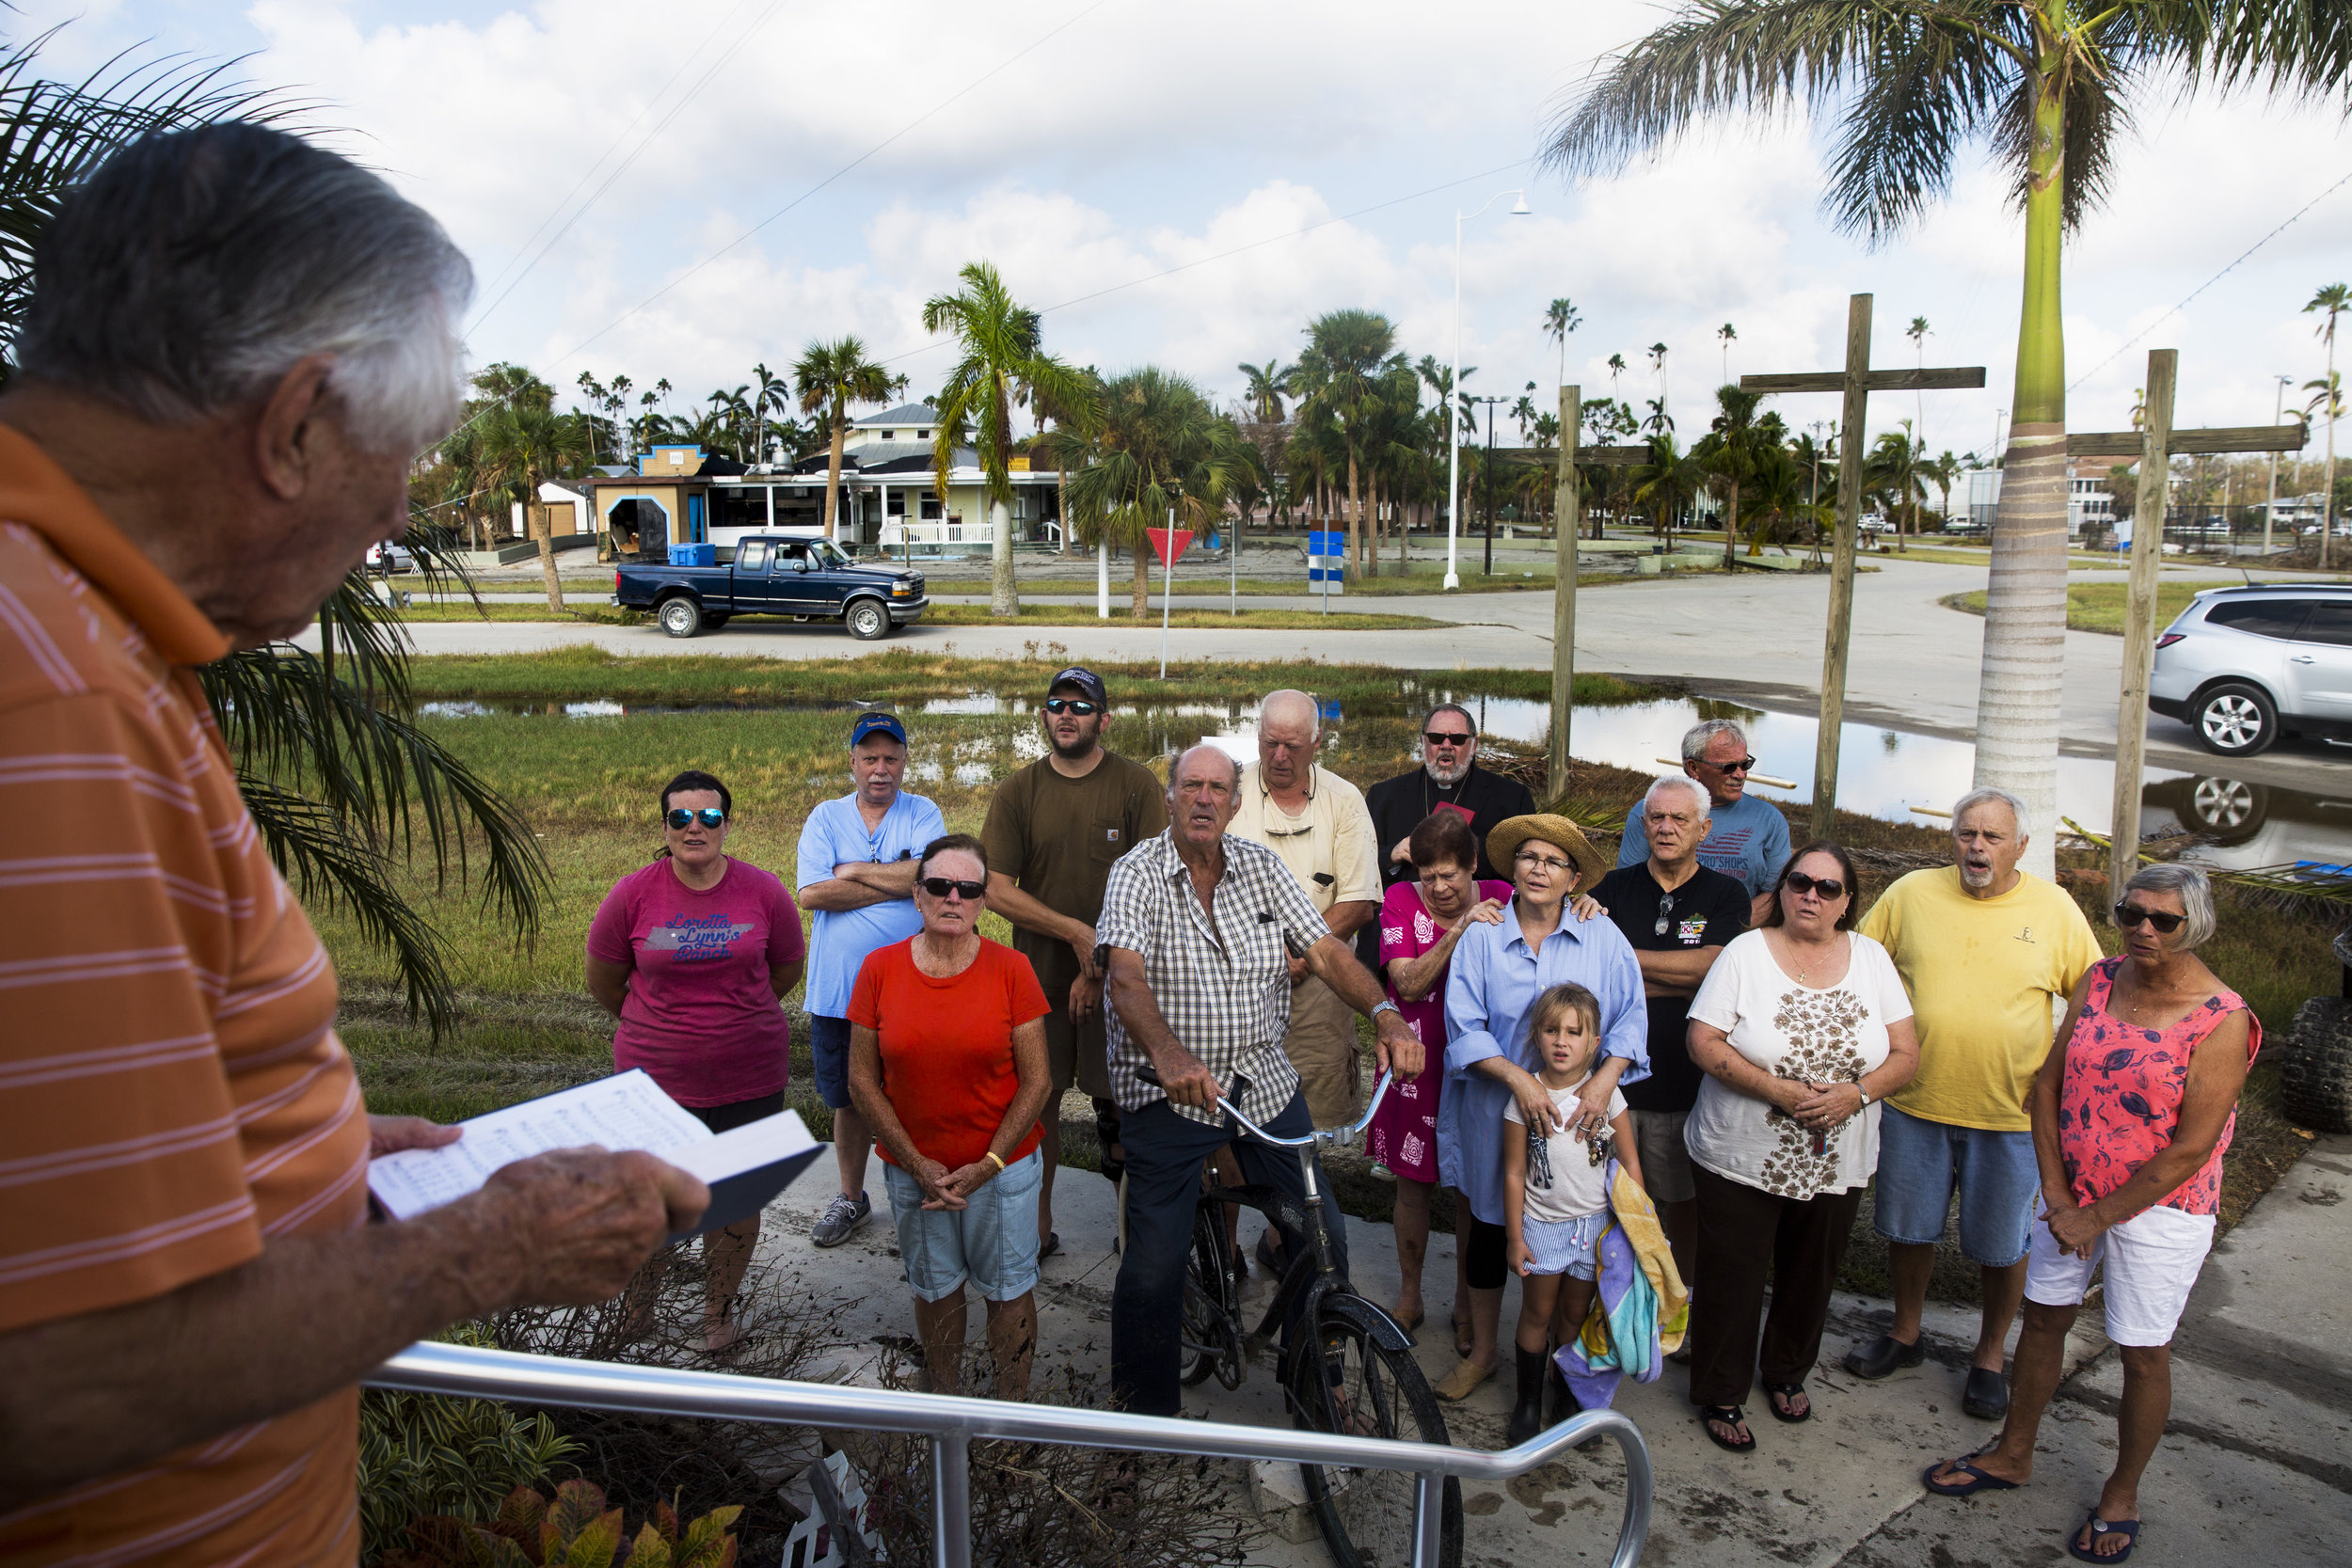 Residents of Everglades City sing songs together during a prayer service in front of Everglades Community Church on Sunday, Sept. 17, 2017.